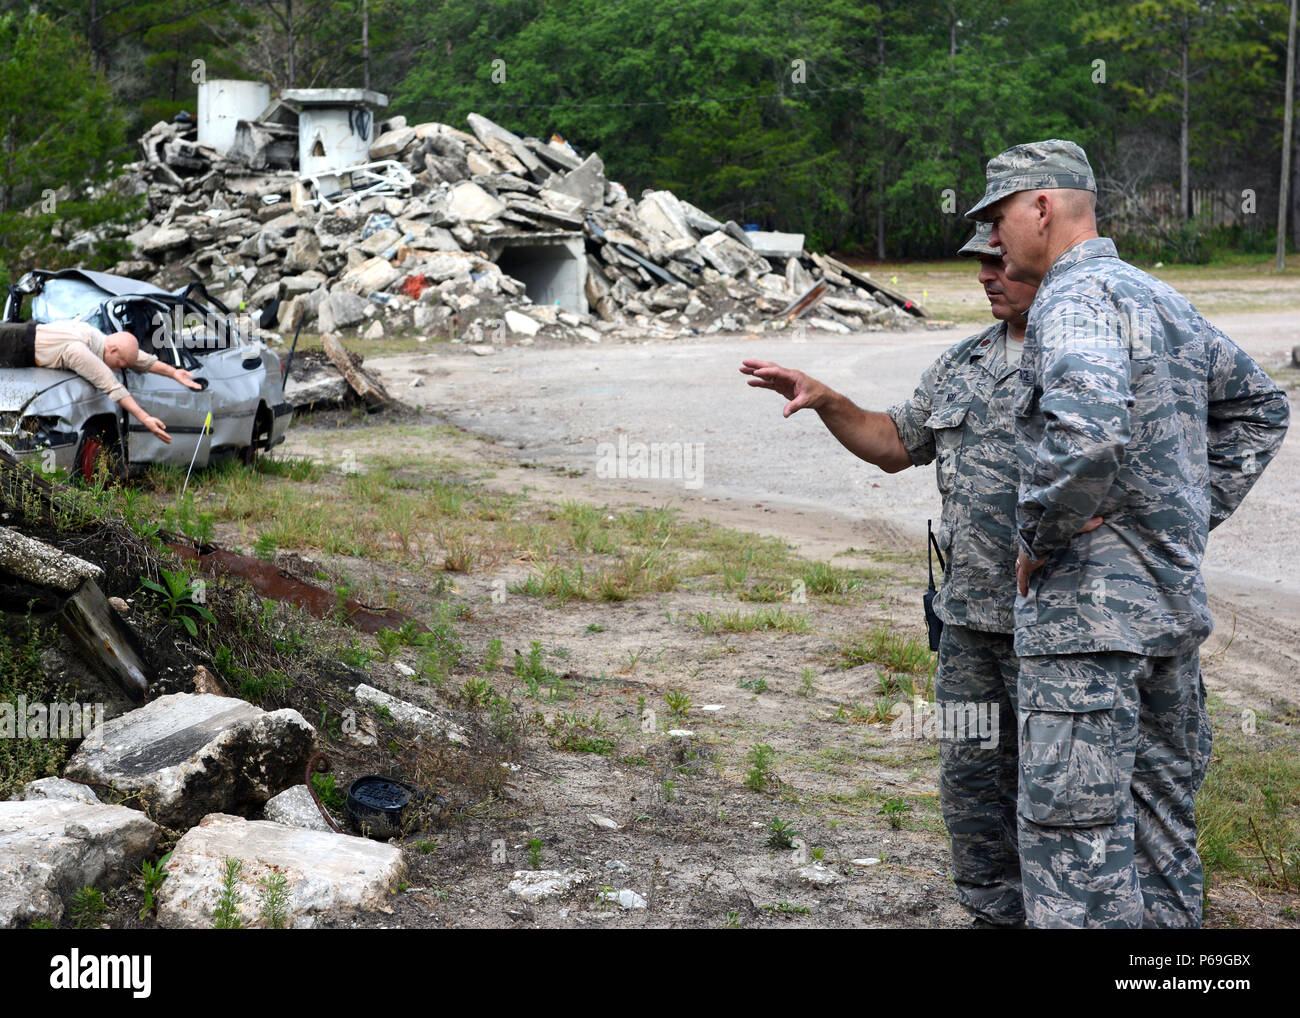 U.S. Air Force Maj. Robert Ard (left) explains the level of complexity in preparation and setup of the Florida Emergency Mortuary Operations Response System (FEMORS) Hurricane Exercise (HUREX) to Brig. Gen. James Eifert, Commander, Florida Air National Guard, at Camp Blanding Joint Training Center in Starke, Fla., on May 19, 2016.The FEMORS HUREX Drill was an first of its kind operational drill designed to establish a learning environment for FEMORS, District Medical Examiner offices (District 4 and District 8), the CERFP and 254th Transportation Company to exercise emergency response plans, p Stock Photo